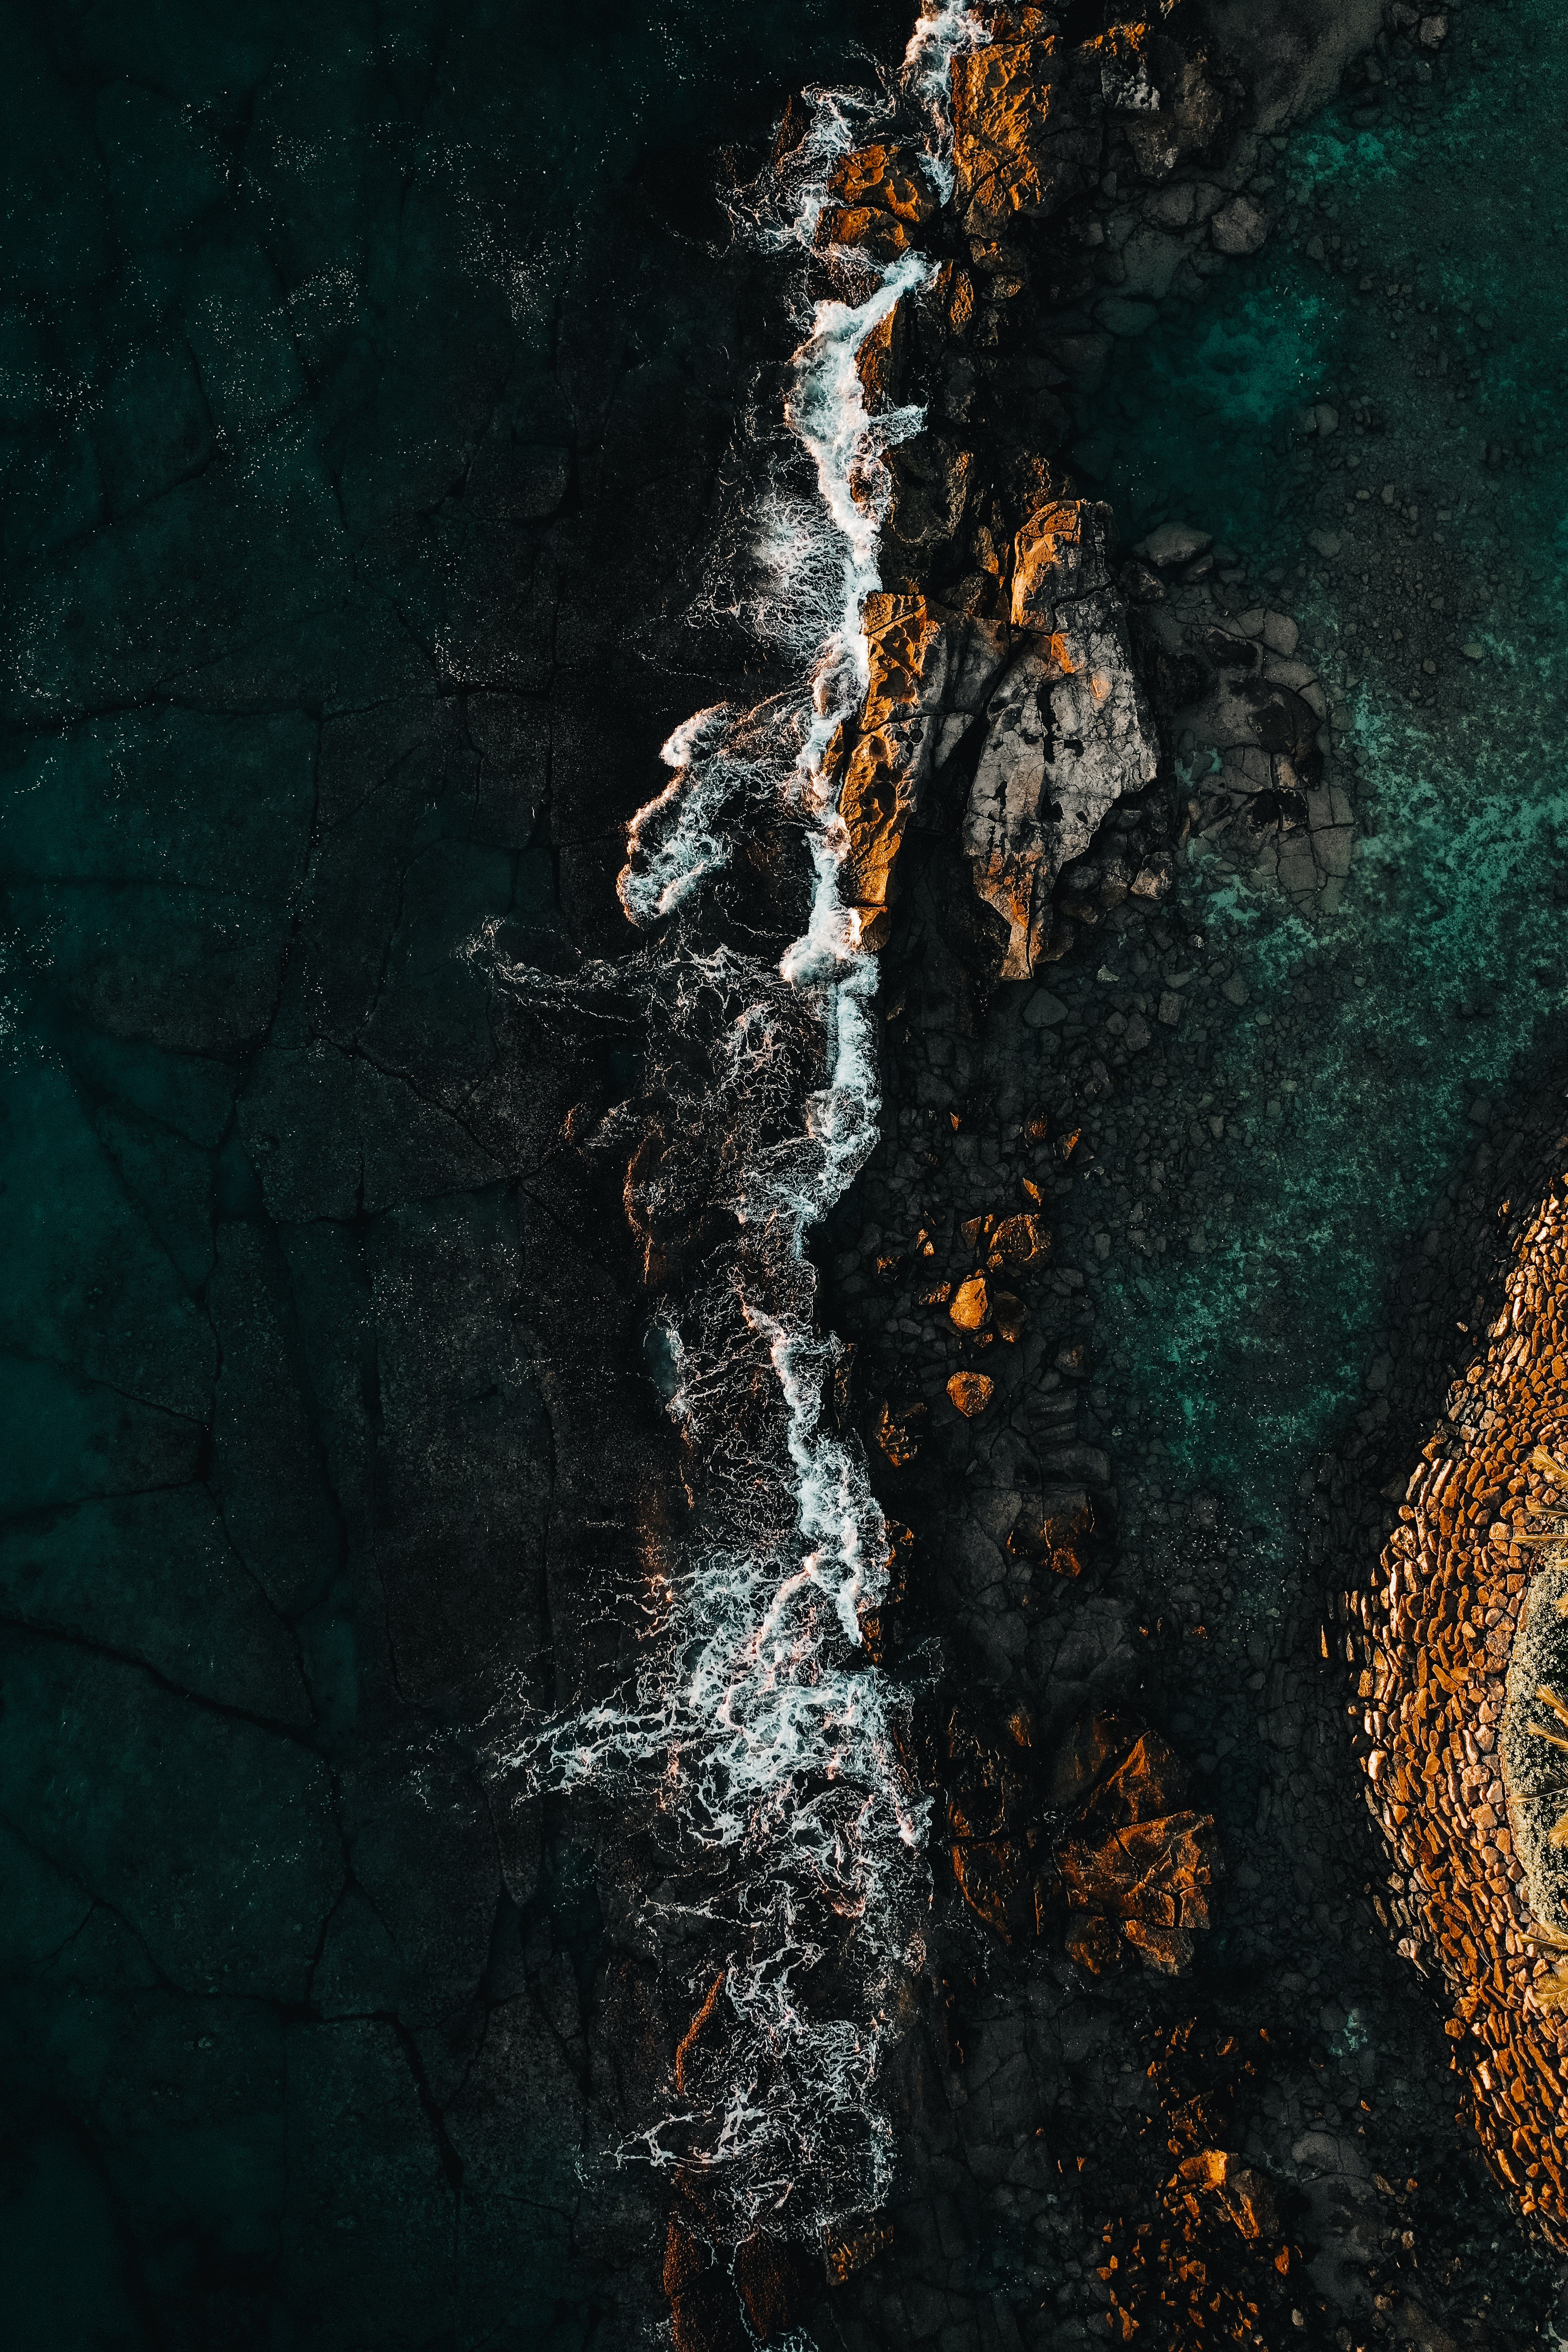 92488 download wallpaper Nature, Water, Stones, Sea, Rocks, View From Above screensavers and pictures for free